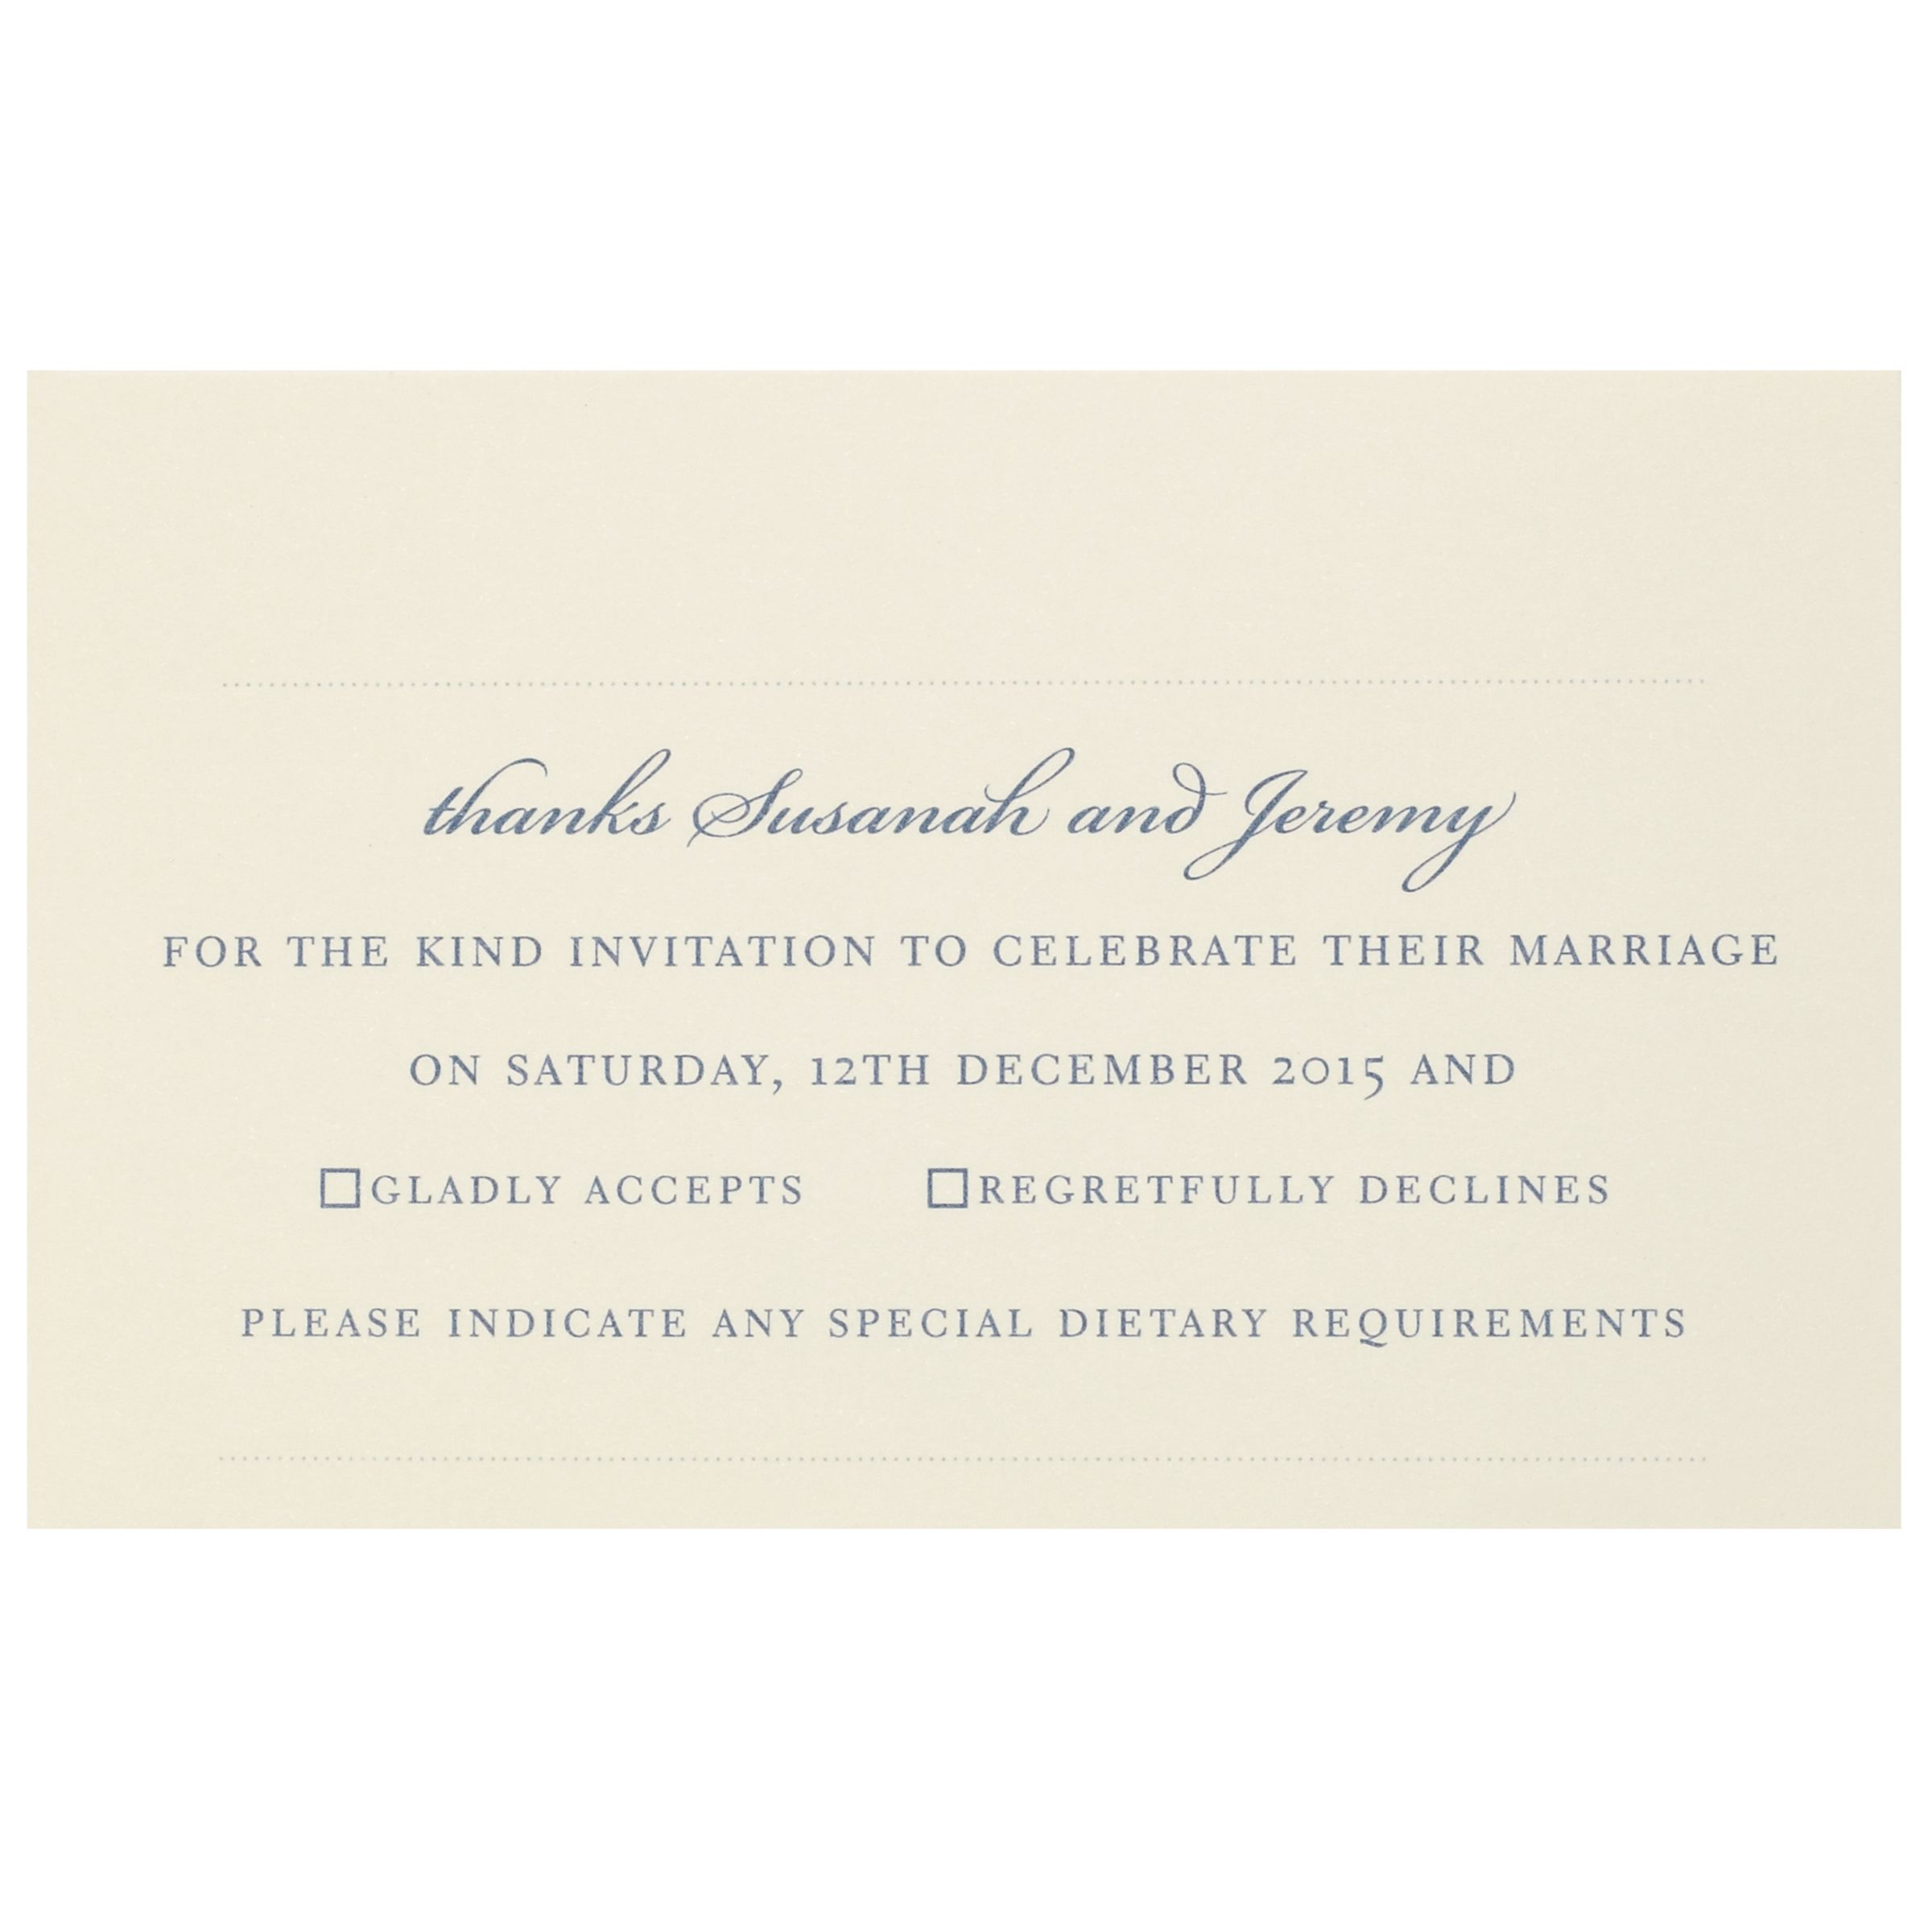 Personalised Wedding Gifts John Lewis : John Lewis CataloguePersonalised Gifts from John Lewis at ...